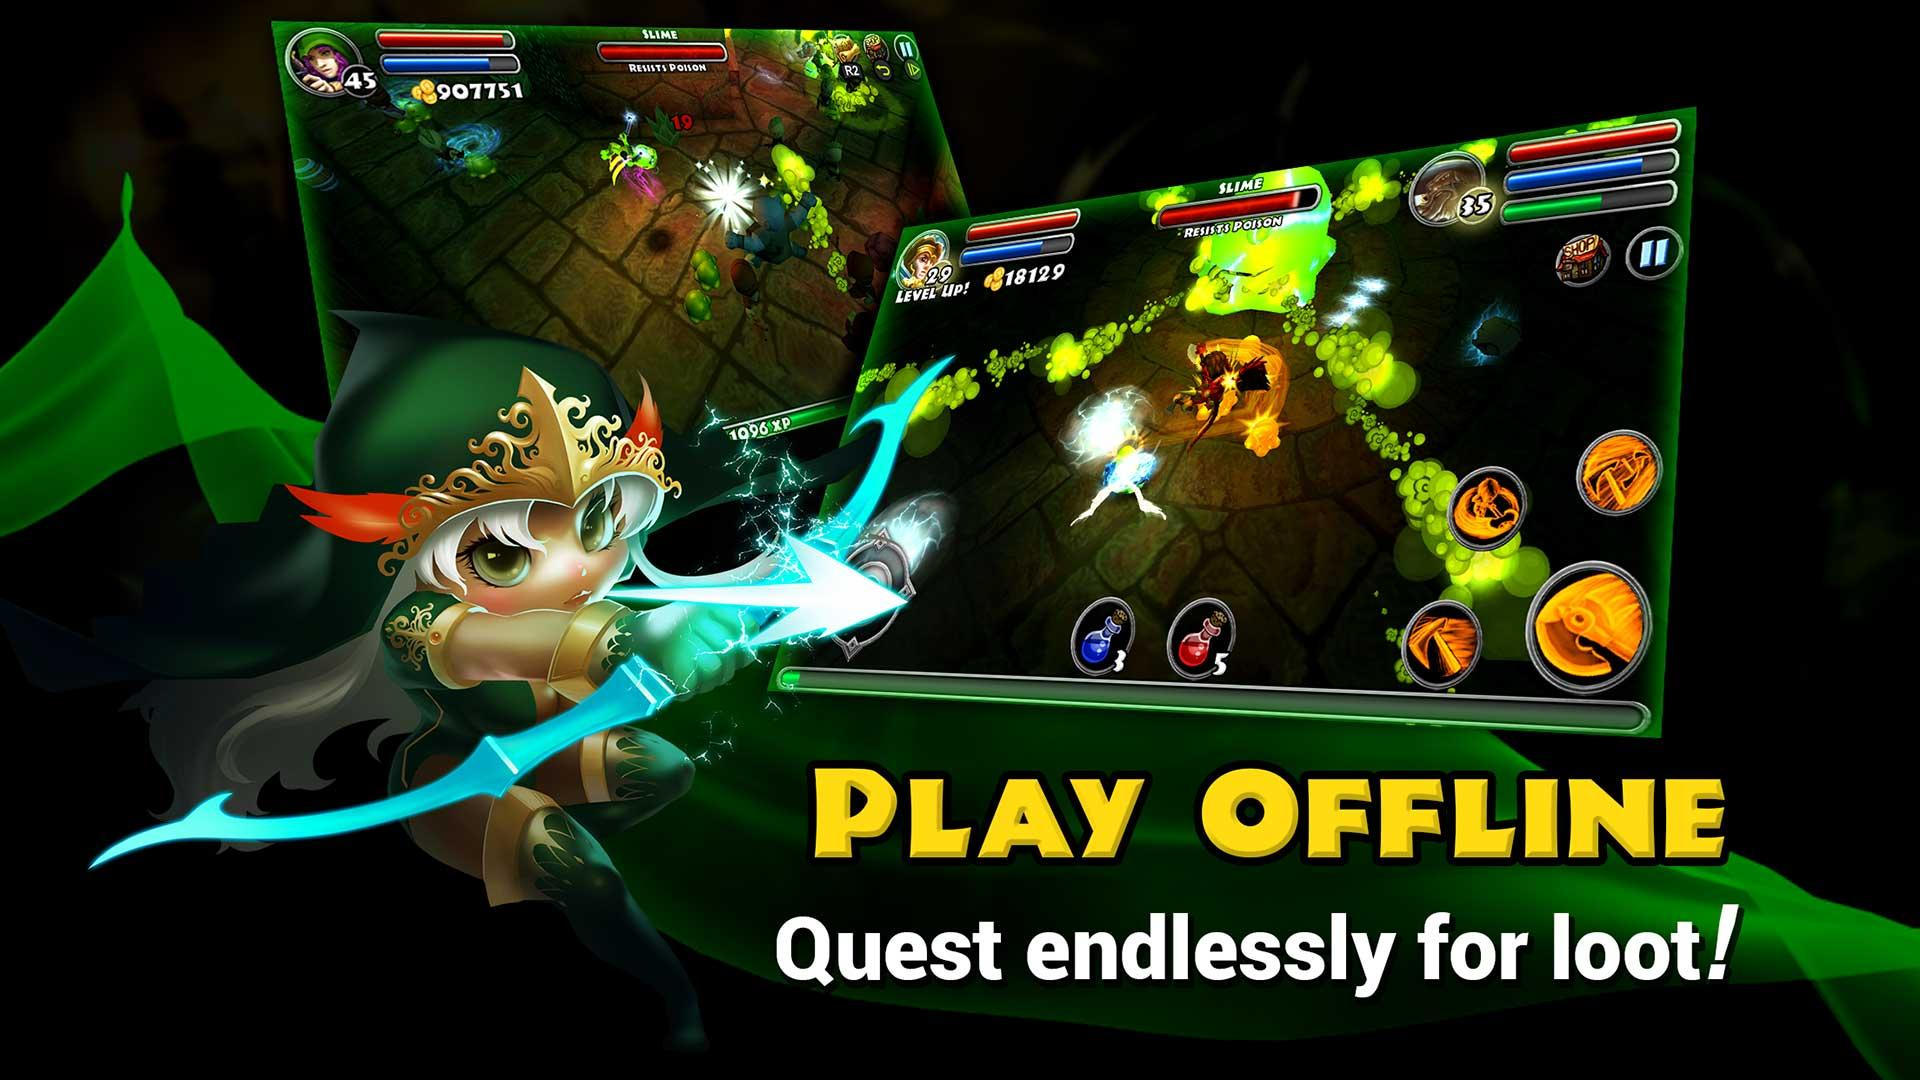 dungeon quest purchase hack apk